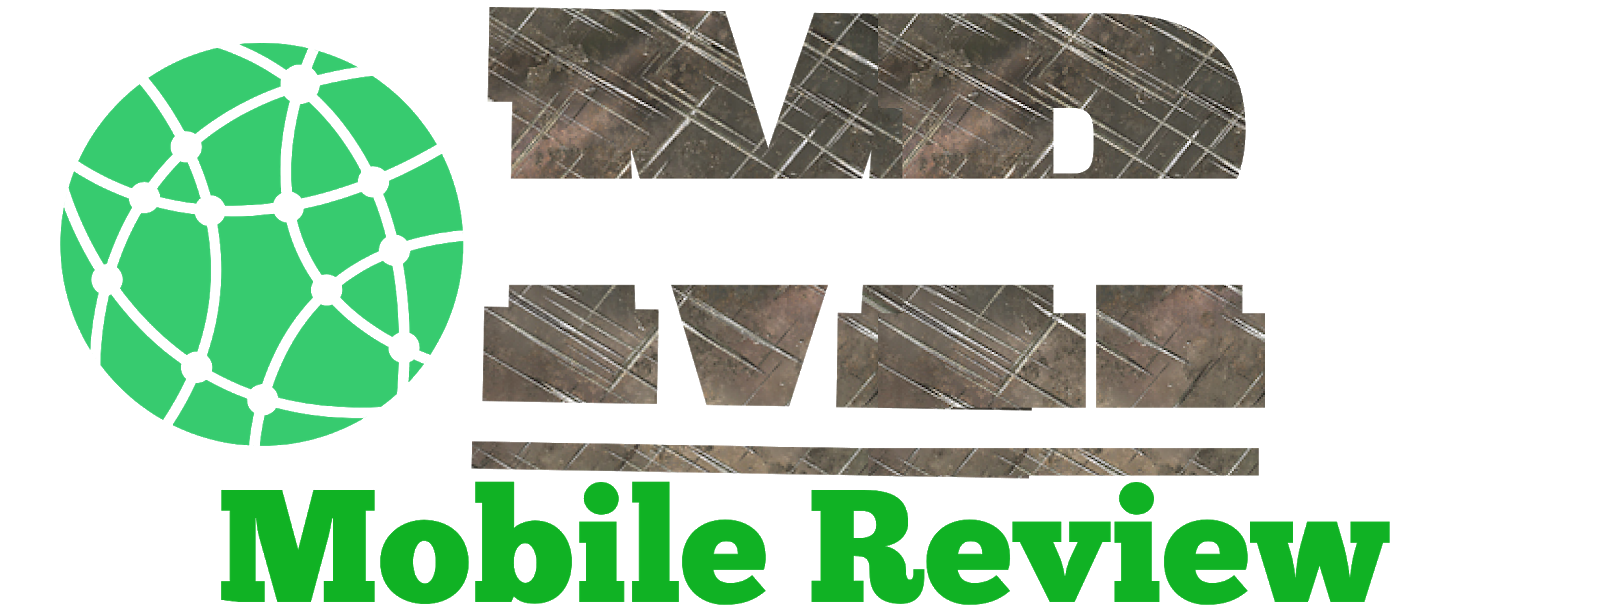 mobilereview.online - The Ultimate resource for mobile phones reviews, specification, information.